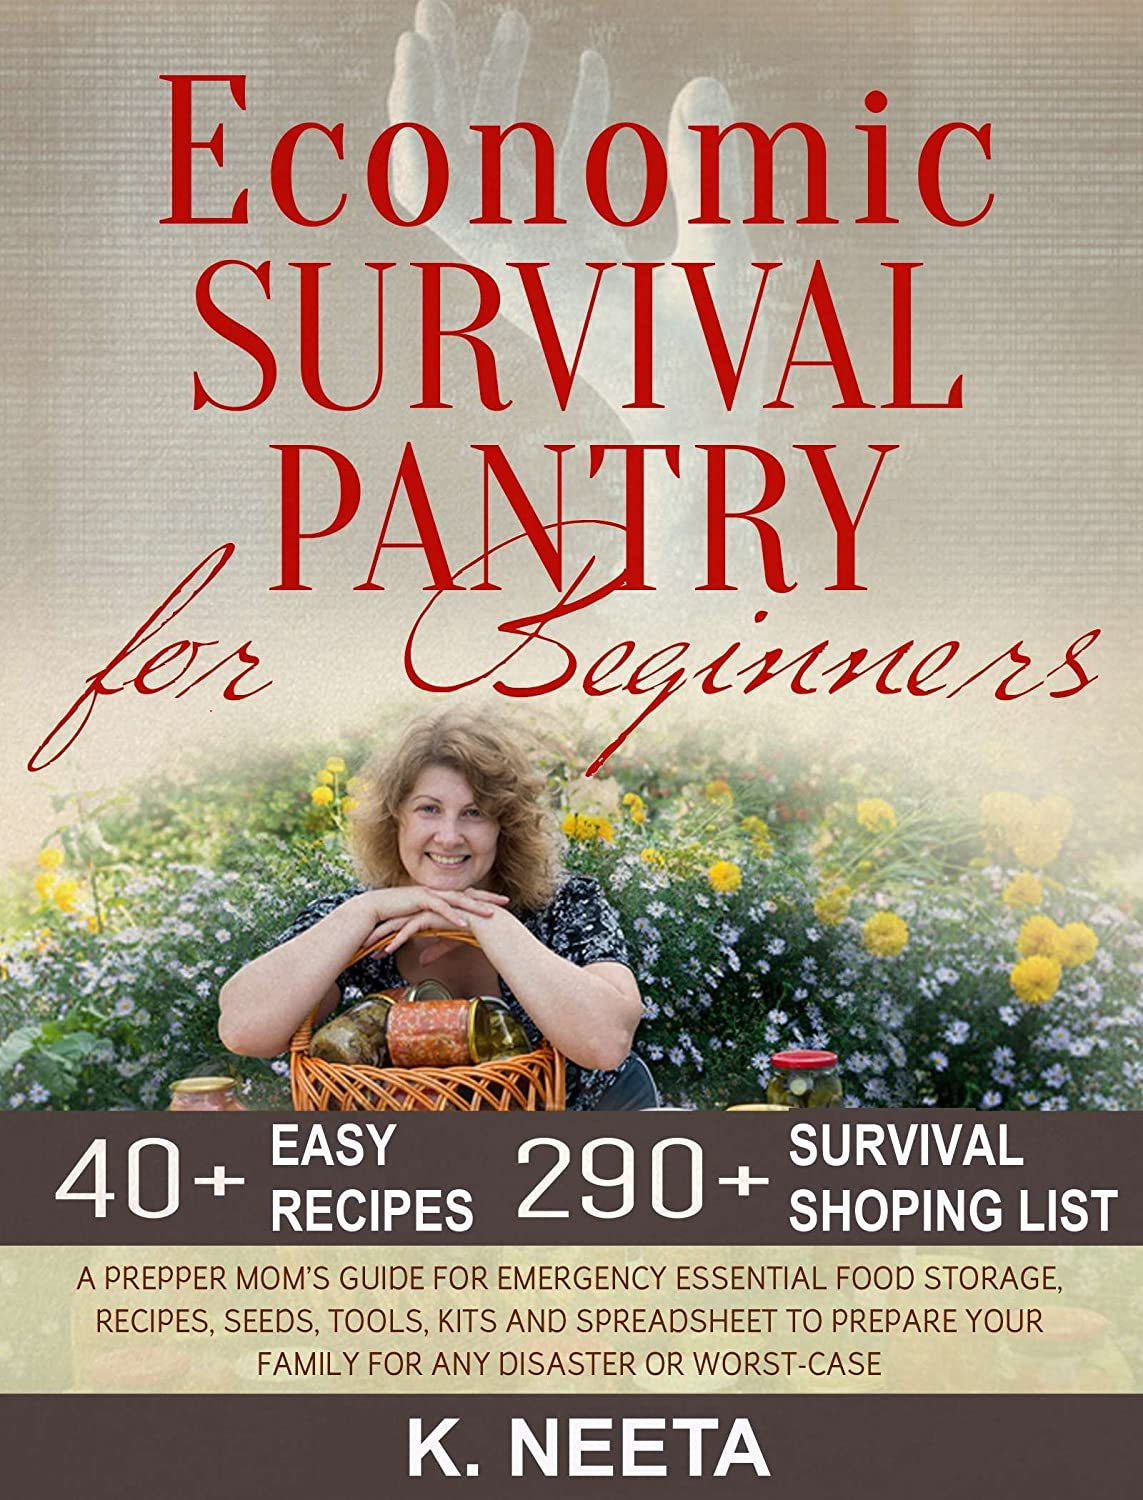 Economic Survival Pantry for Beginners